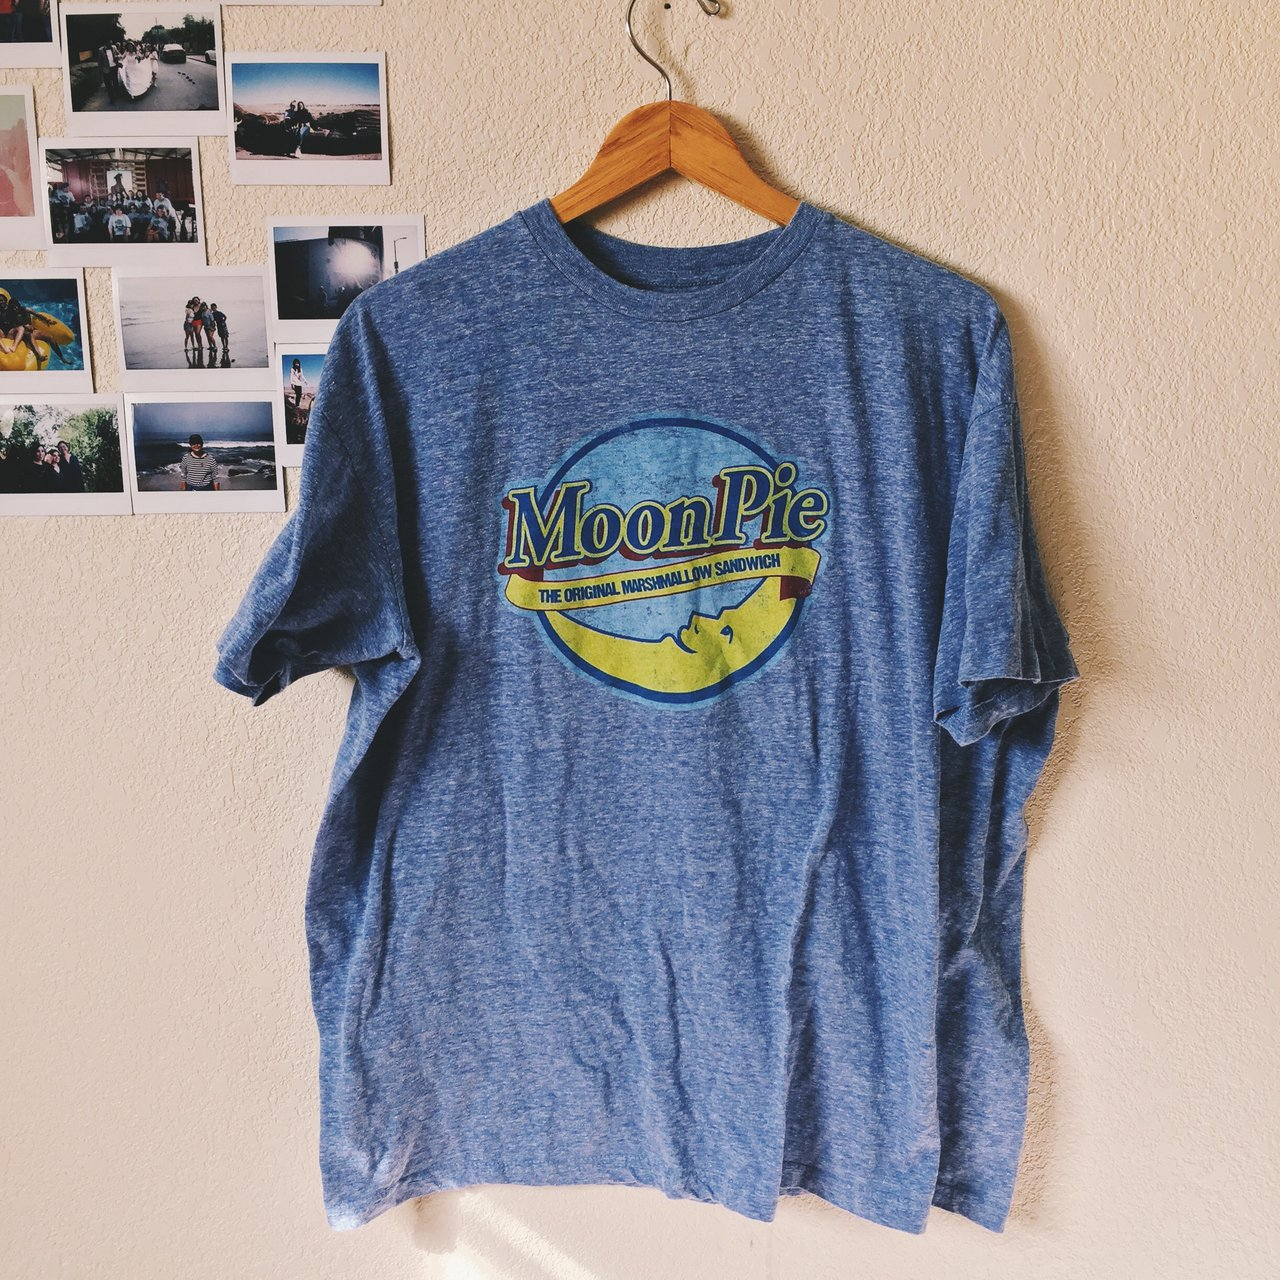 Gimme Some Moon Pie Shirt Comes In A Light Blue Color On Depop